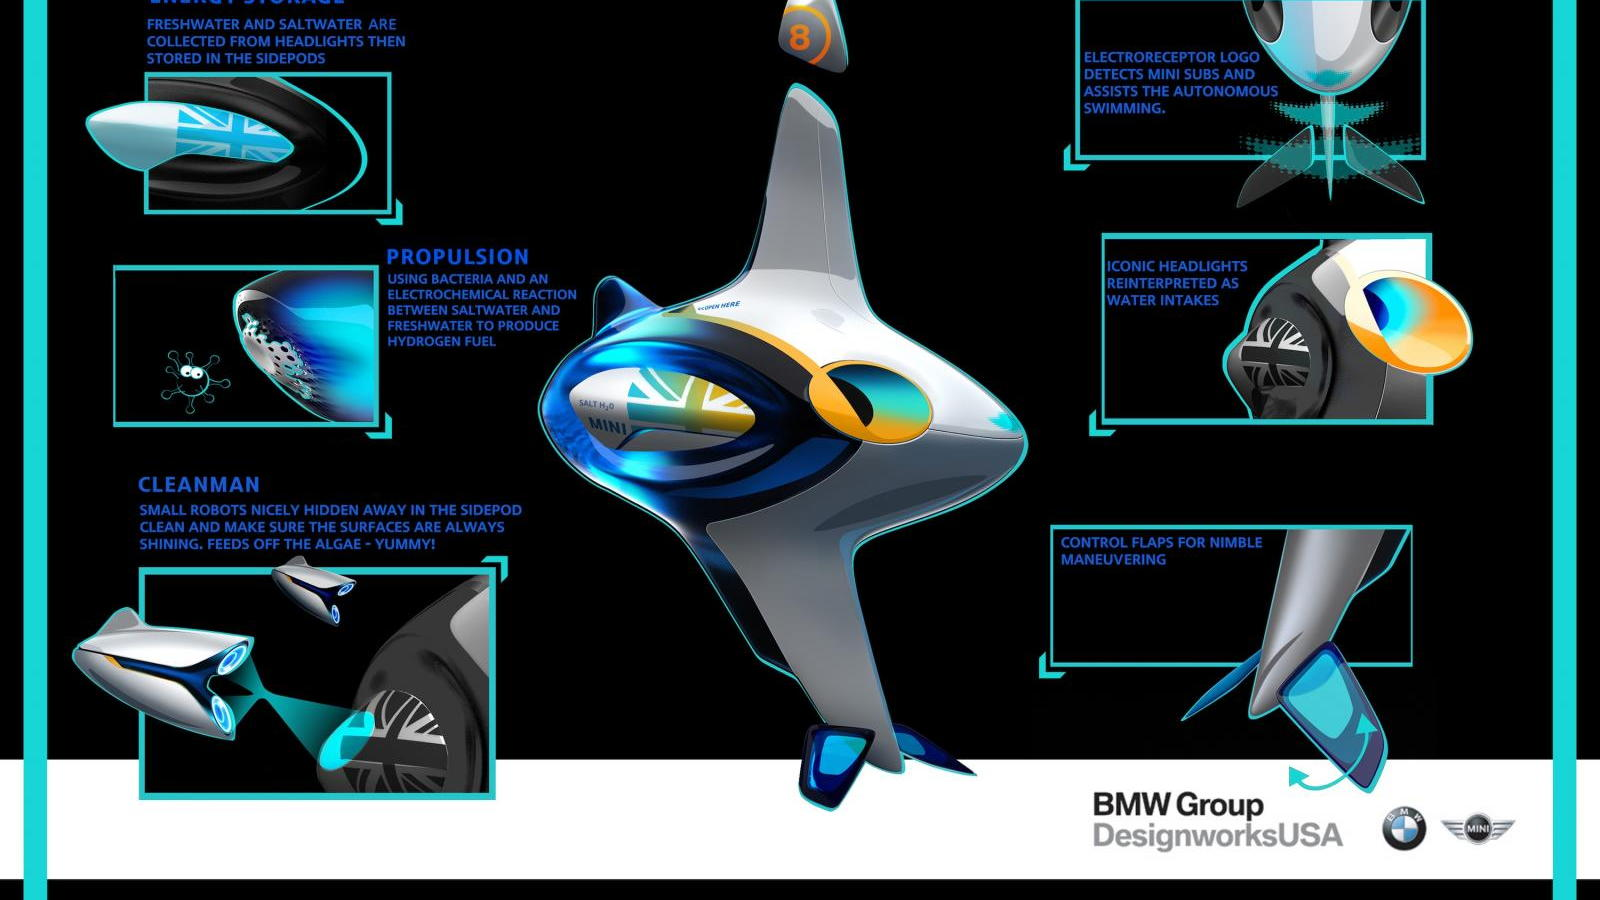 BMW Group DesignworksUSA L.A. Subways, Los Angeles Auto Show Design Challenge